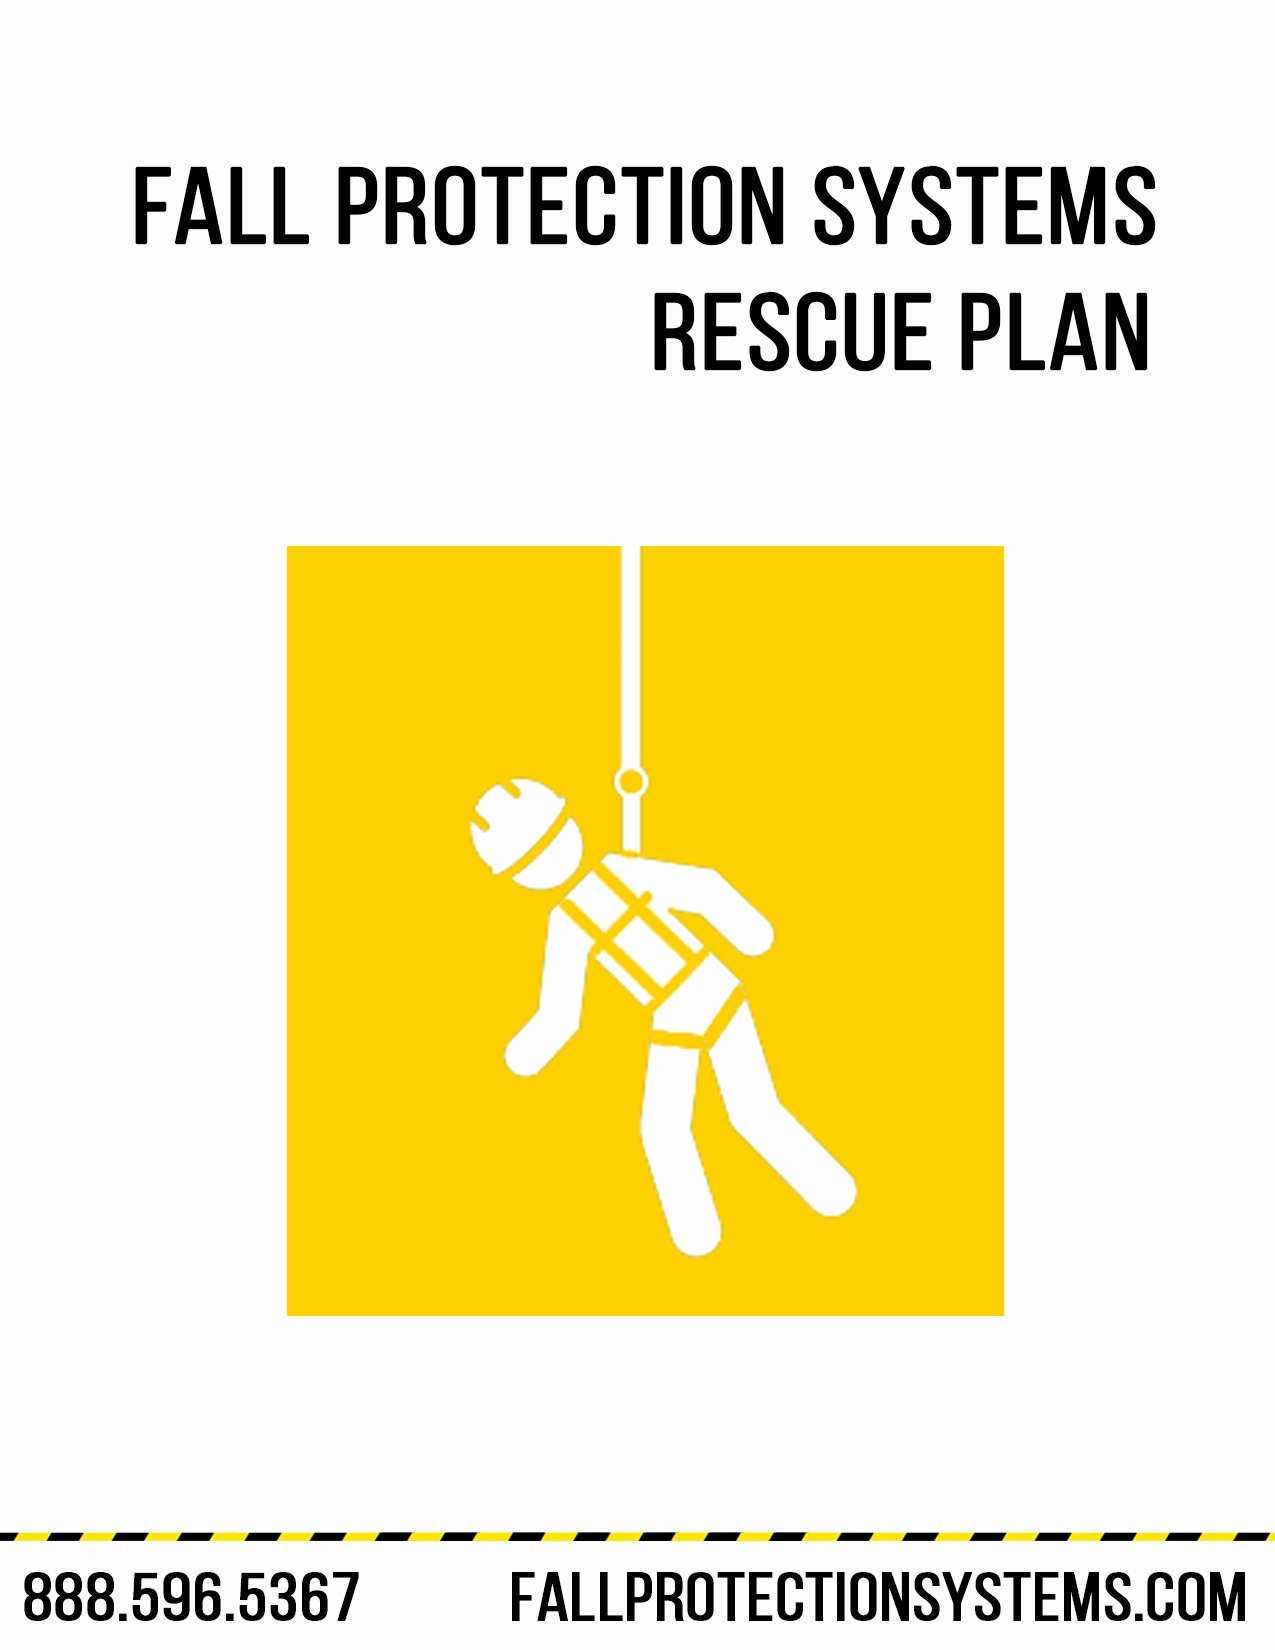 Fall Protection Plan Template Best Of Fall Protection From Work Plan to Rescue Plan